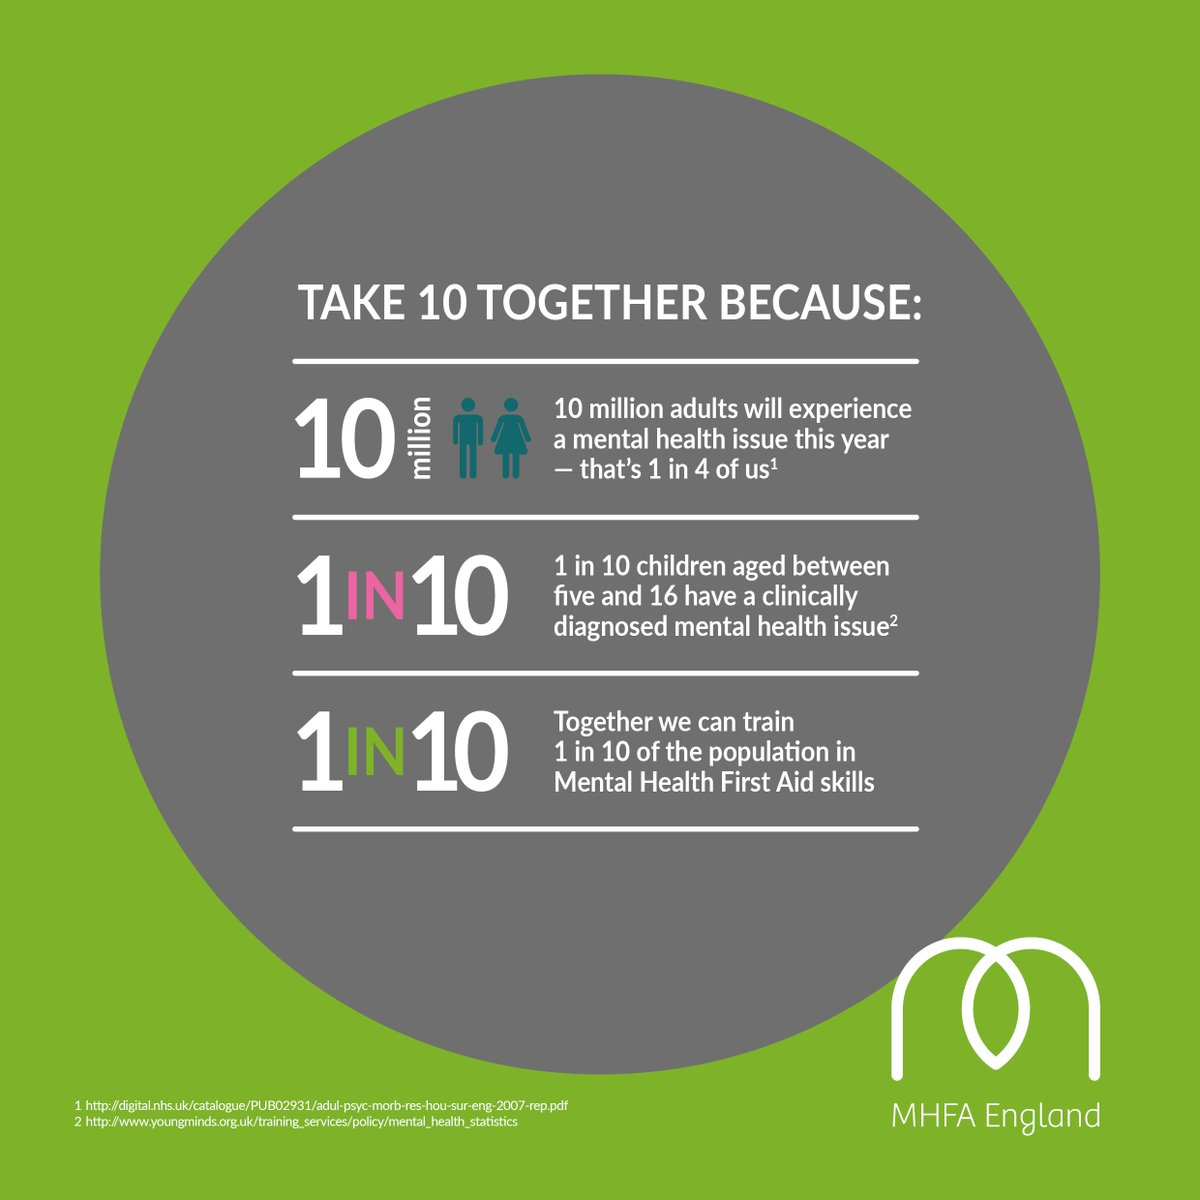 1 in 4 experiences a mental health issue each year. Take 10 minutes and ask someone how they&#39;re feeling #WednesdayWisdom <br>http://pic.twitter.com/1XDDVGwRRc